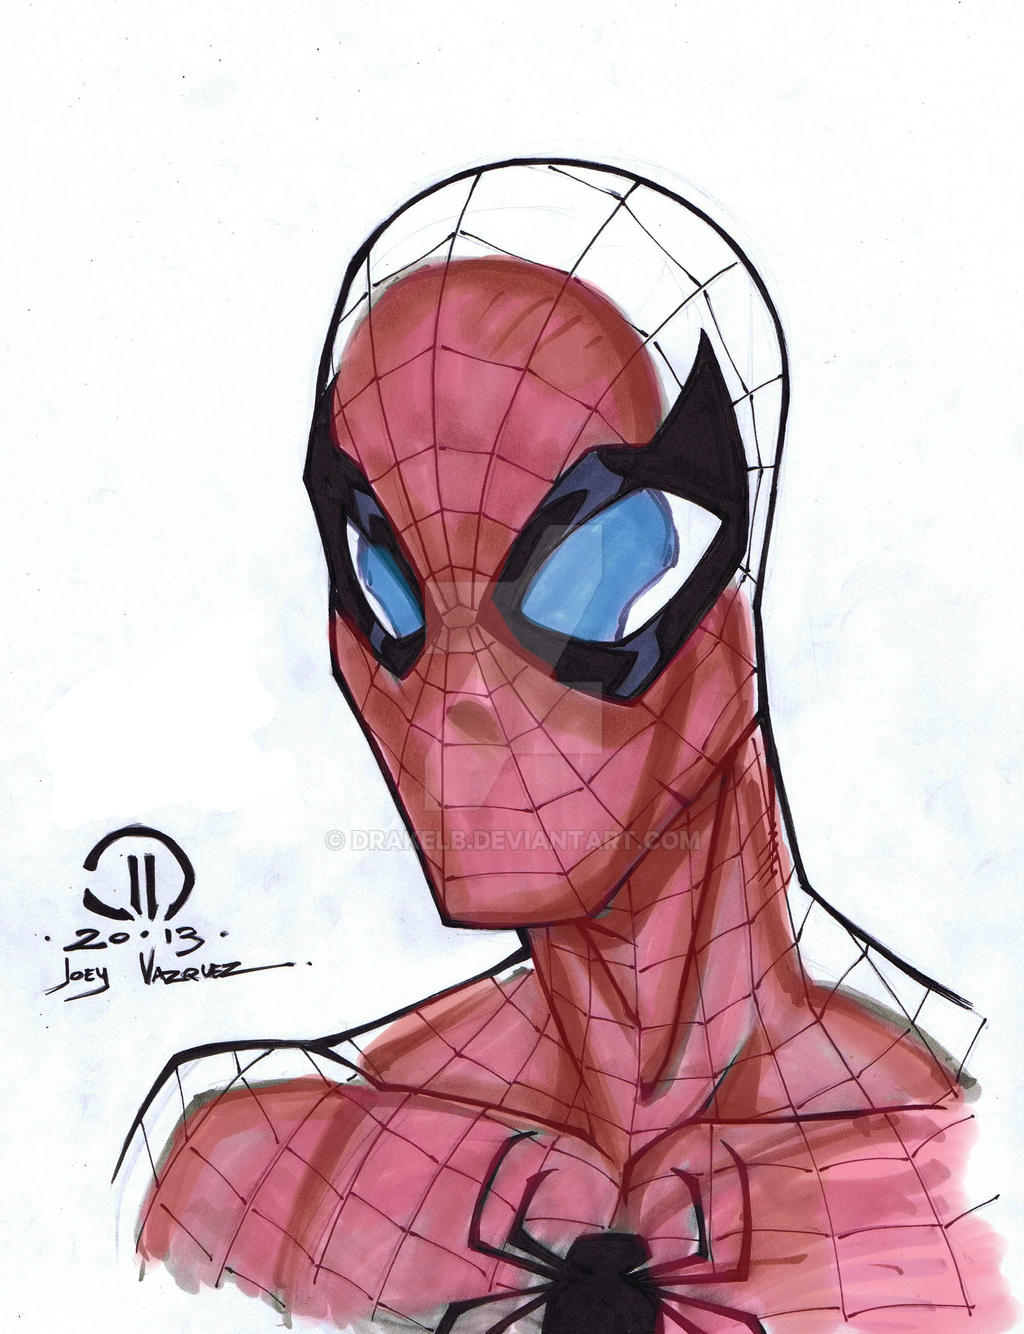 Spidey by Drakelb